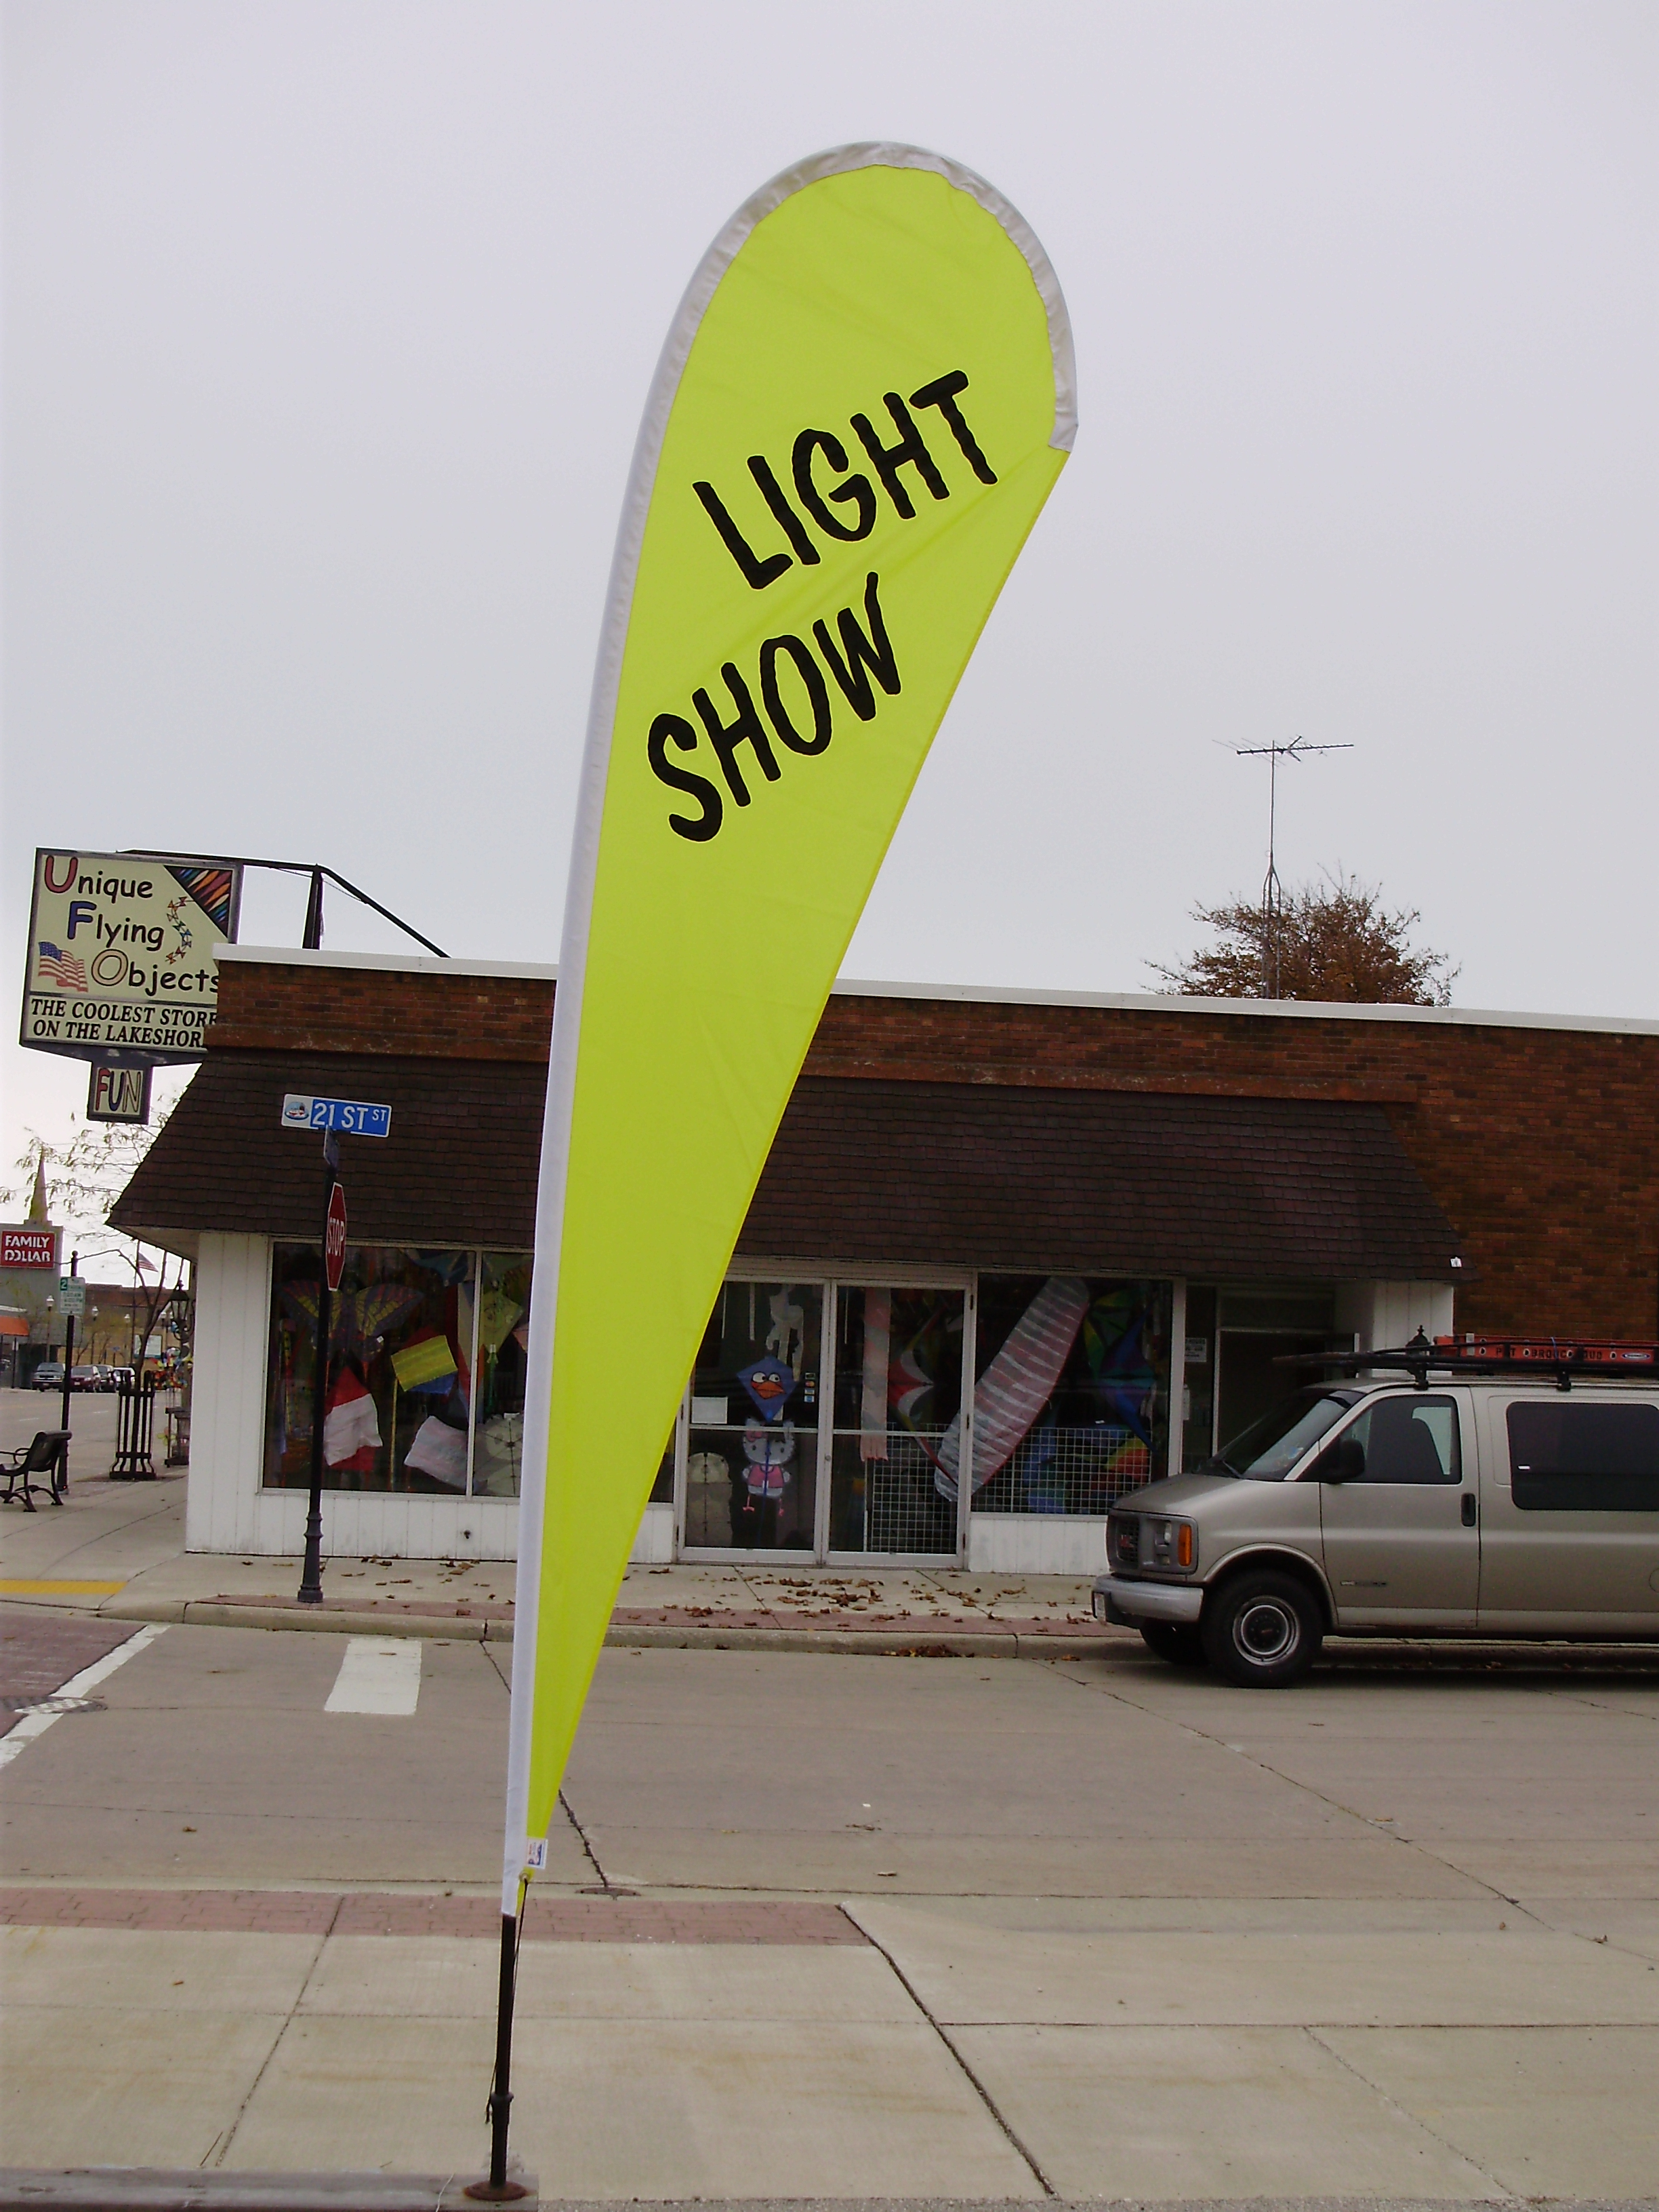 10ft. LIGHT SHOW Custom Teardrop Banner